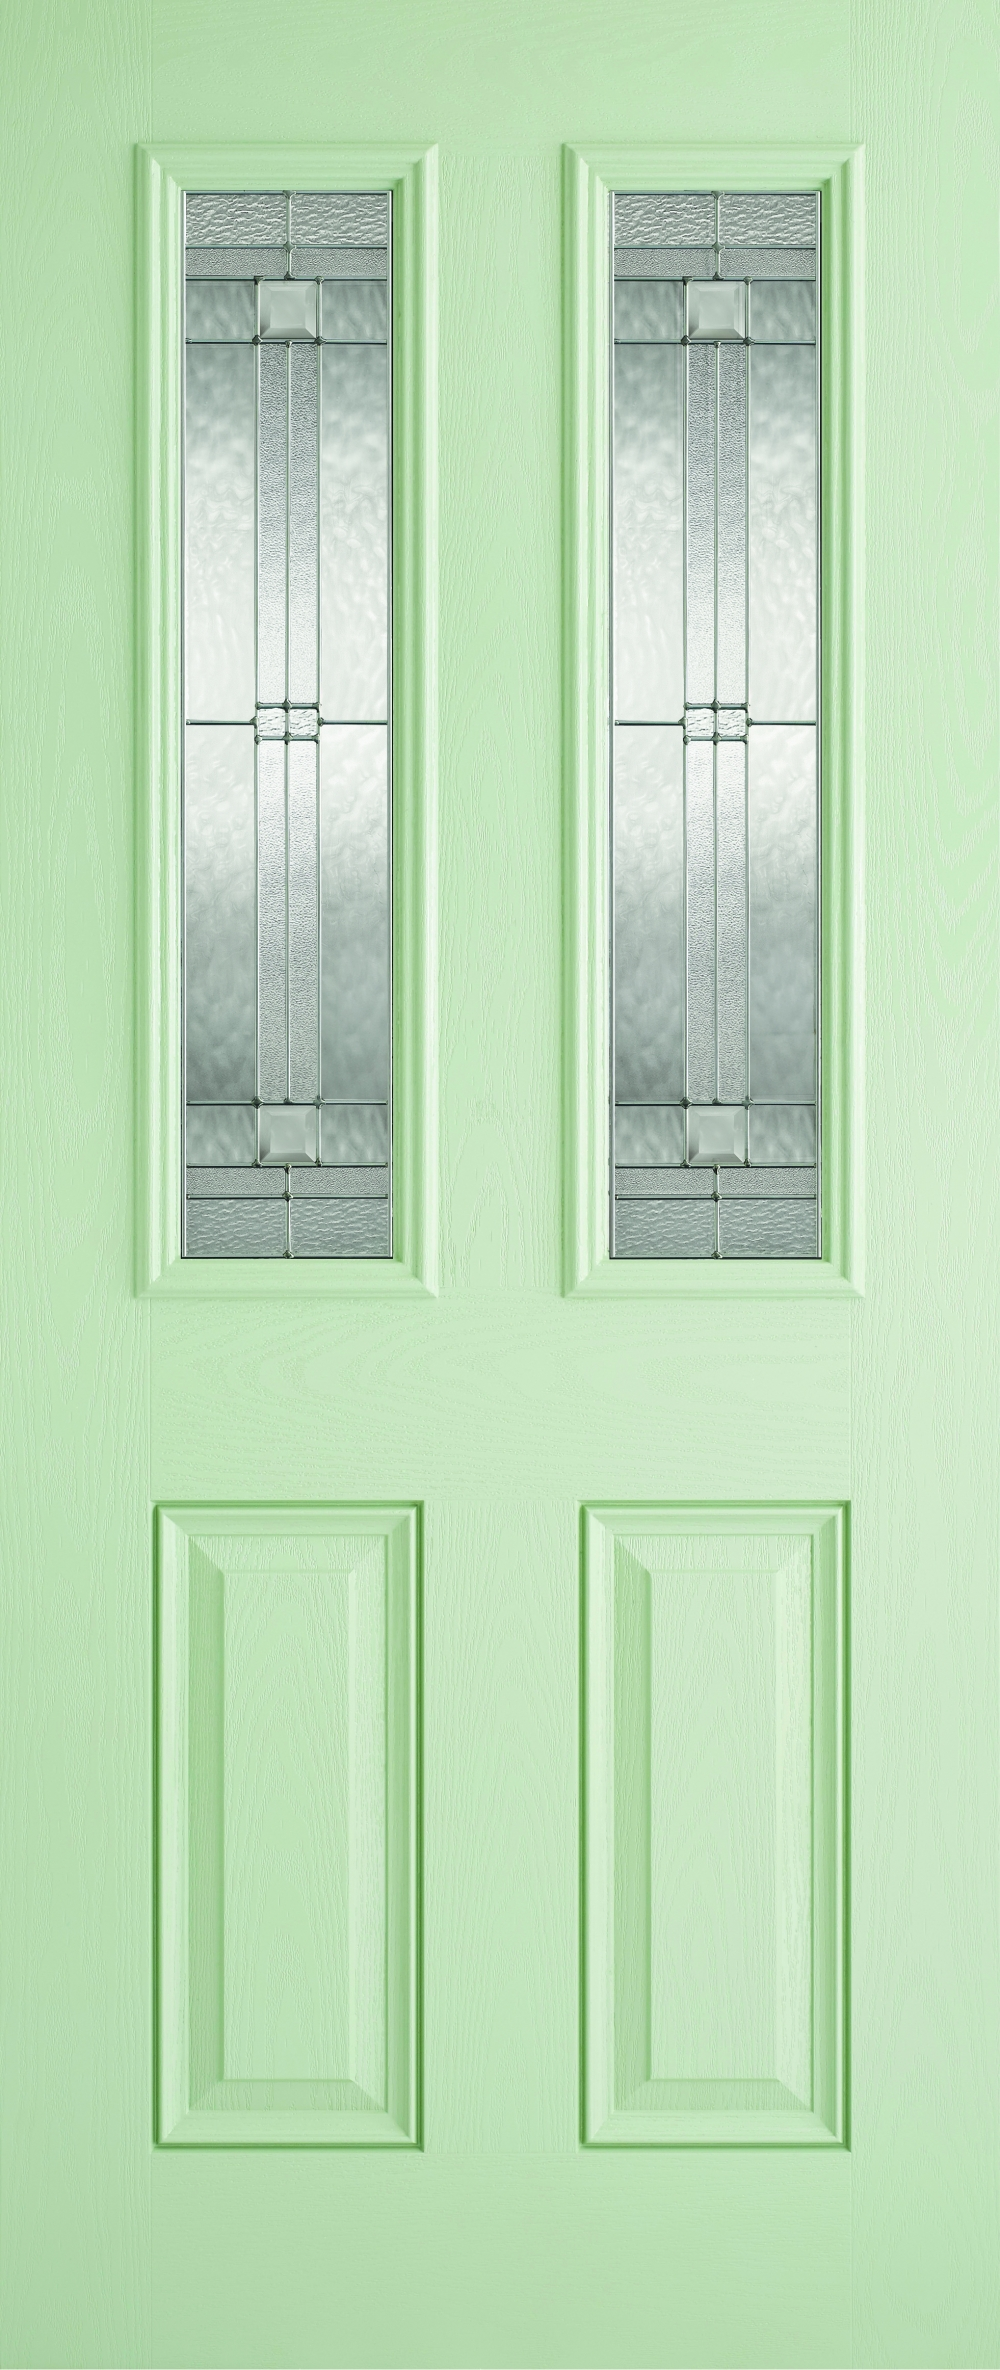 Malton Green Glazed Composite Door